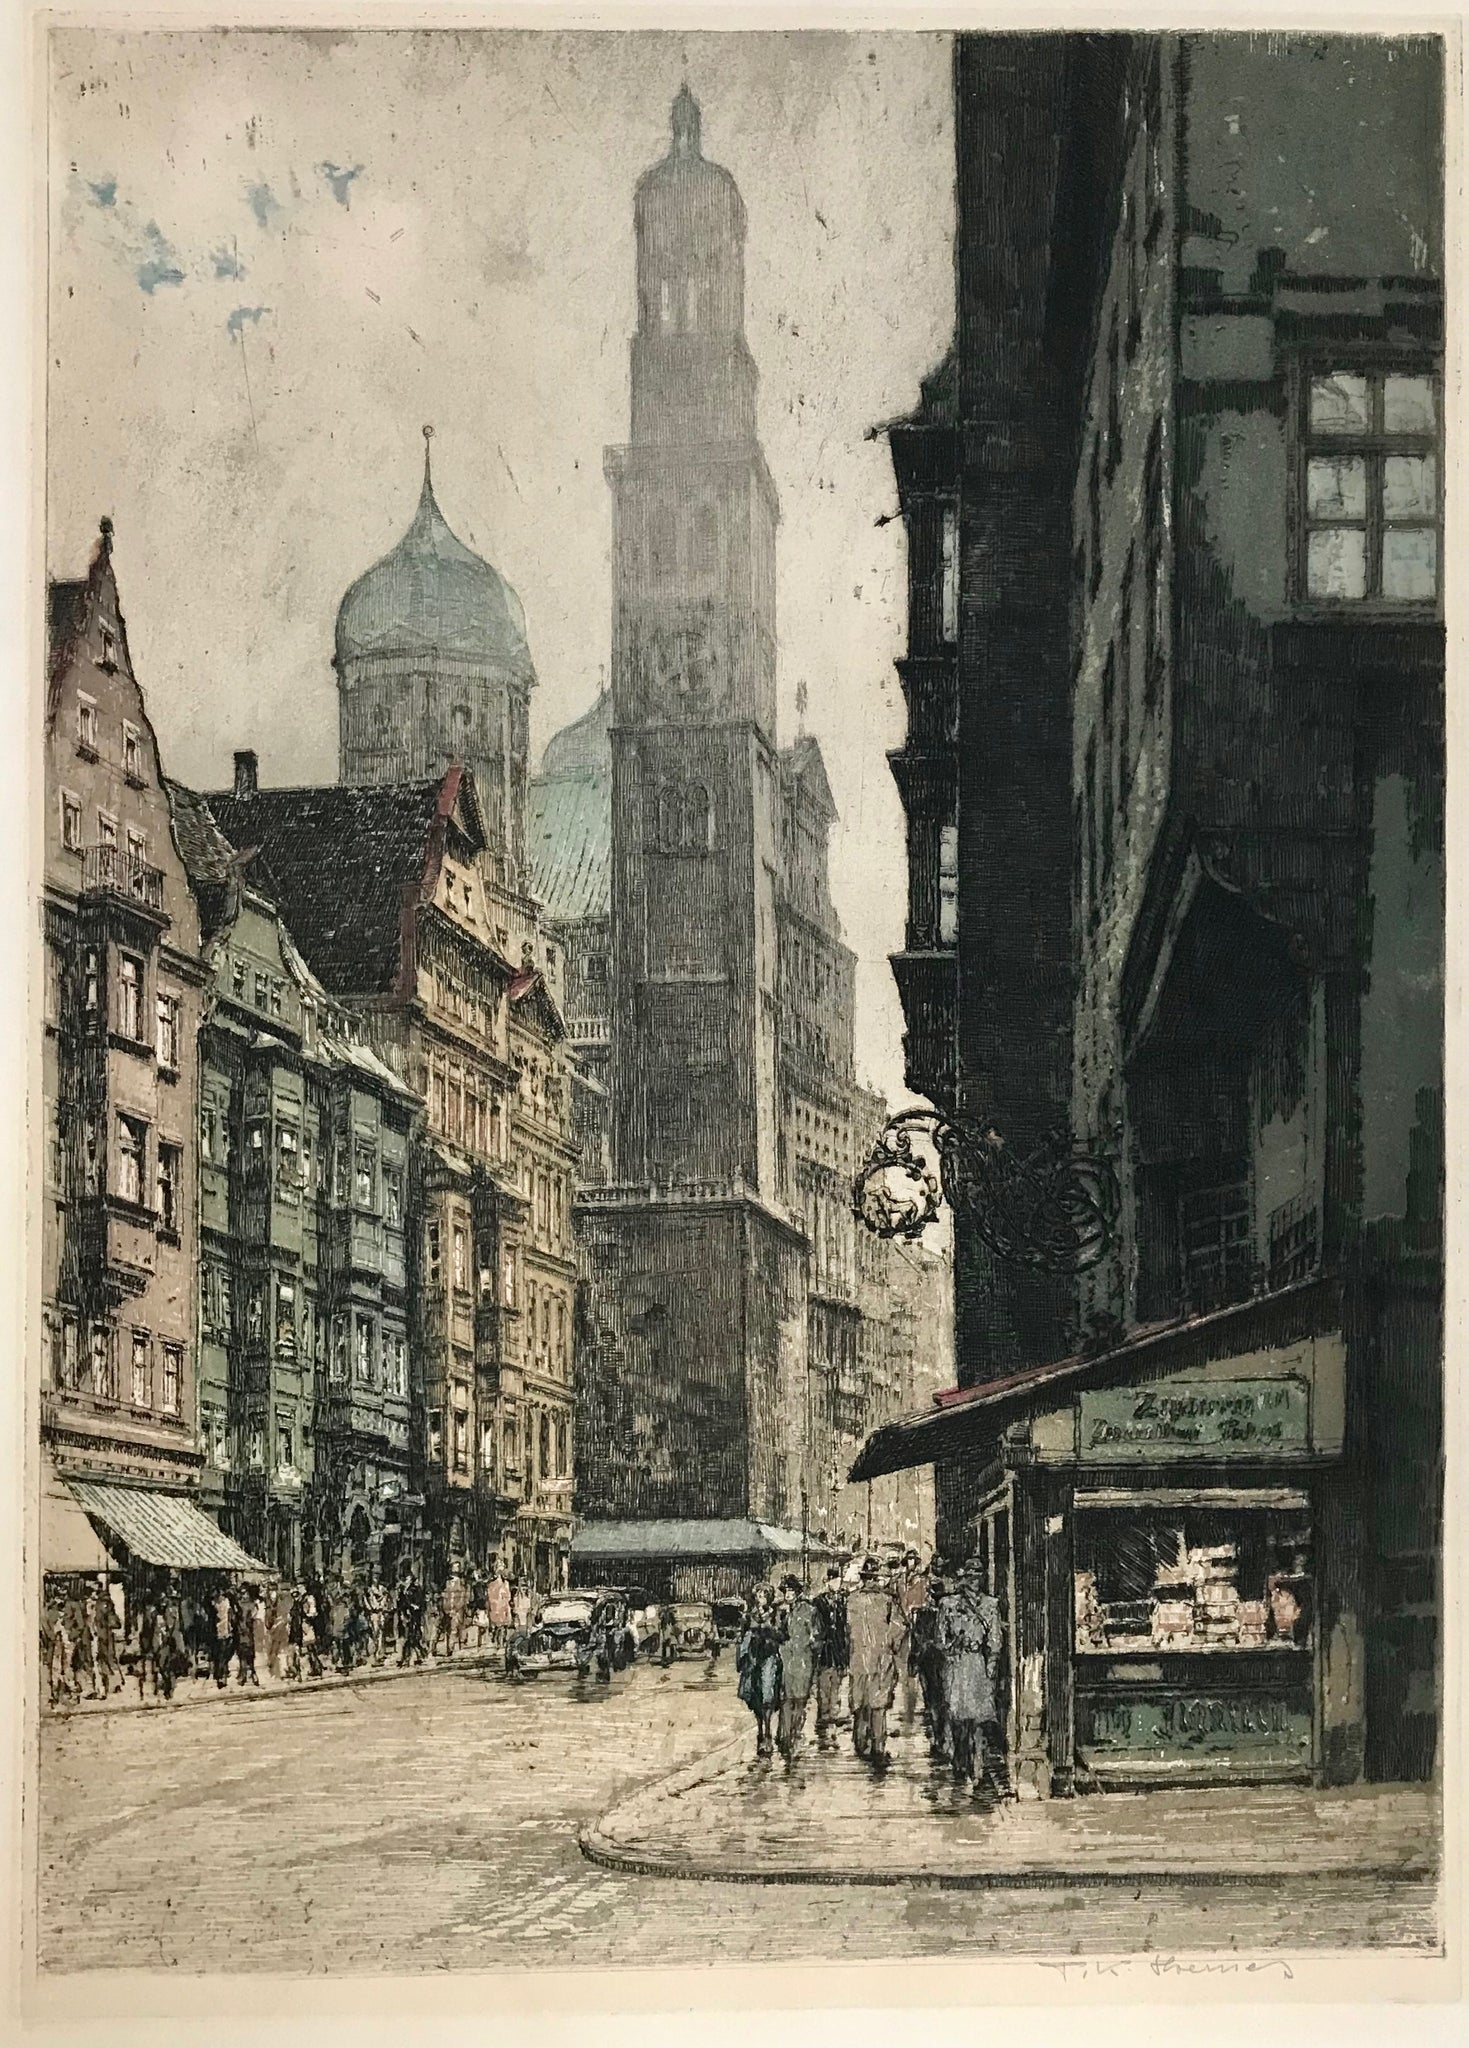 No title. Augsburg, Carolinen-Street, Germany  Etching. Printed in color. Signed T(anna) K(asimir) Hoernes